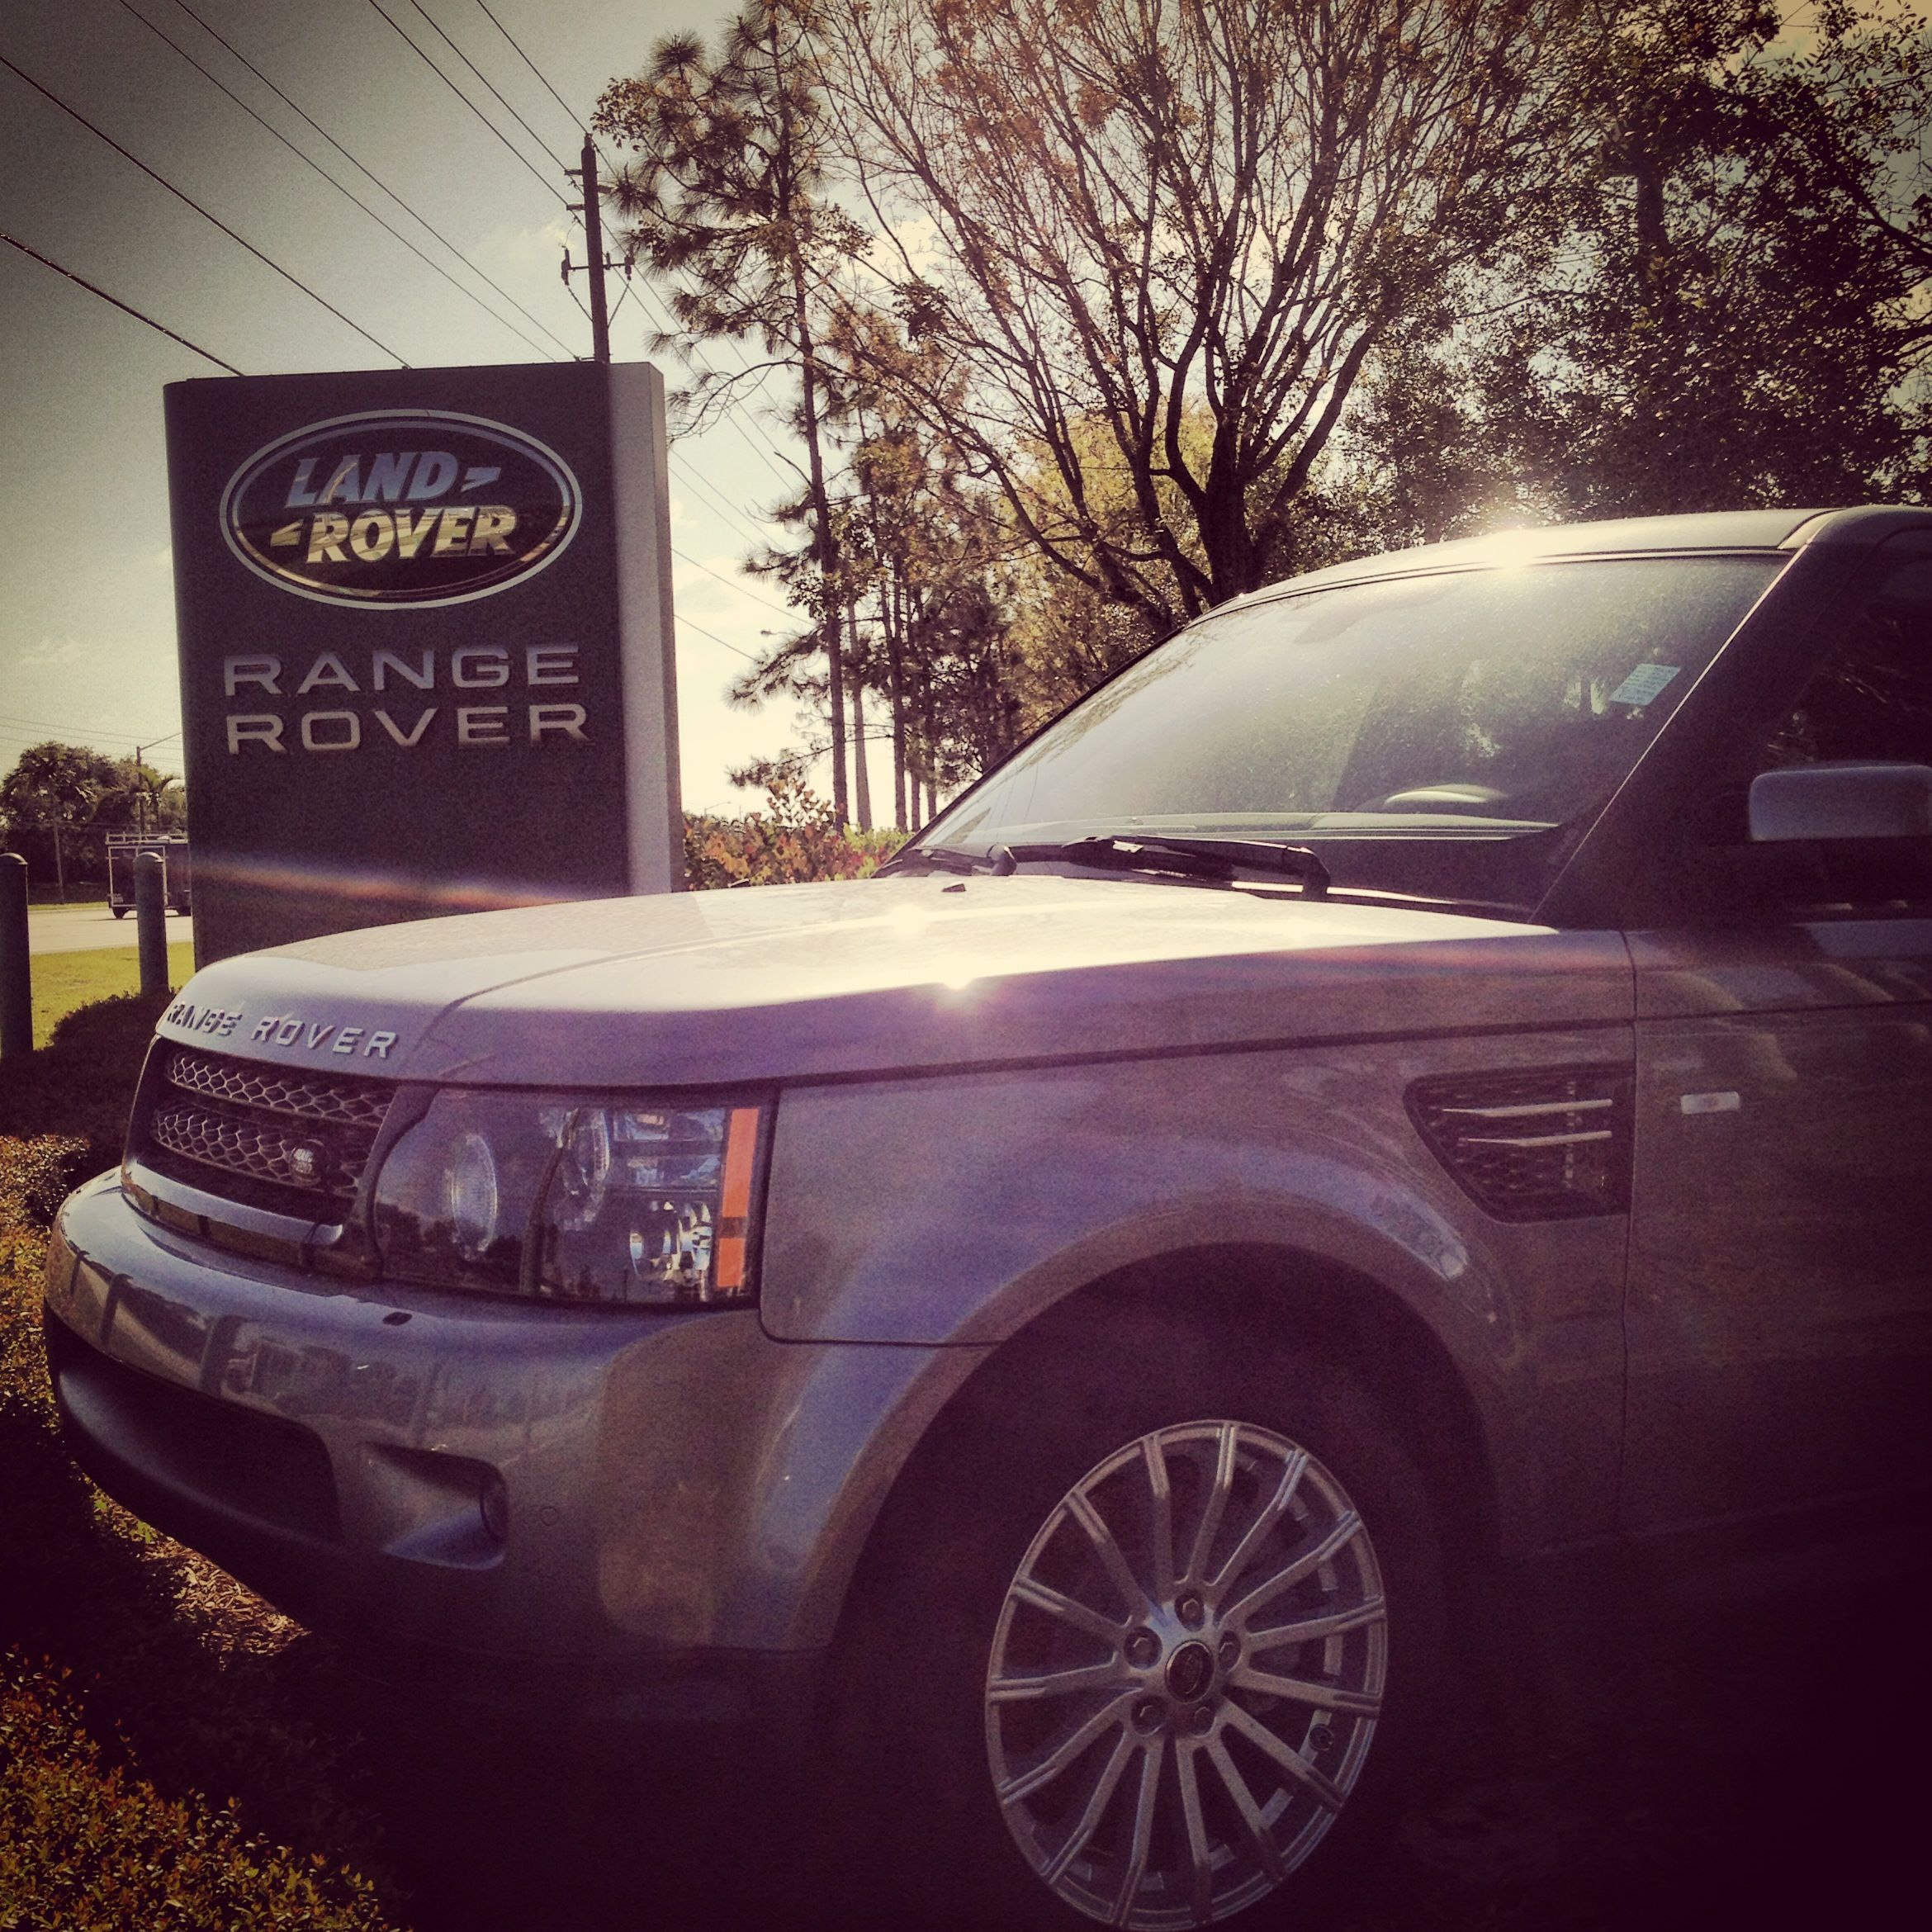 Featuring a Range Rover Sport at the entrance to our dealership